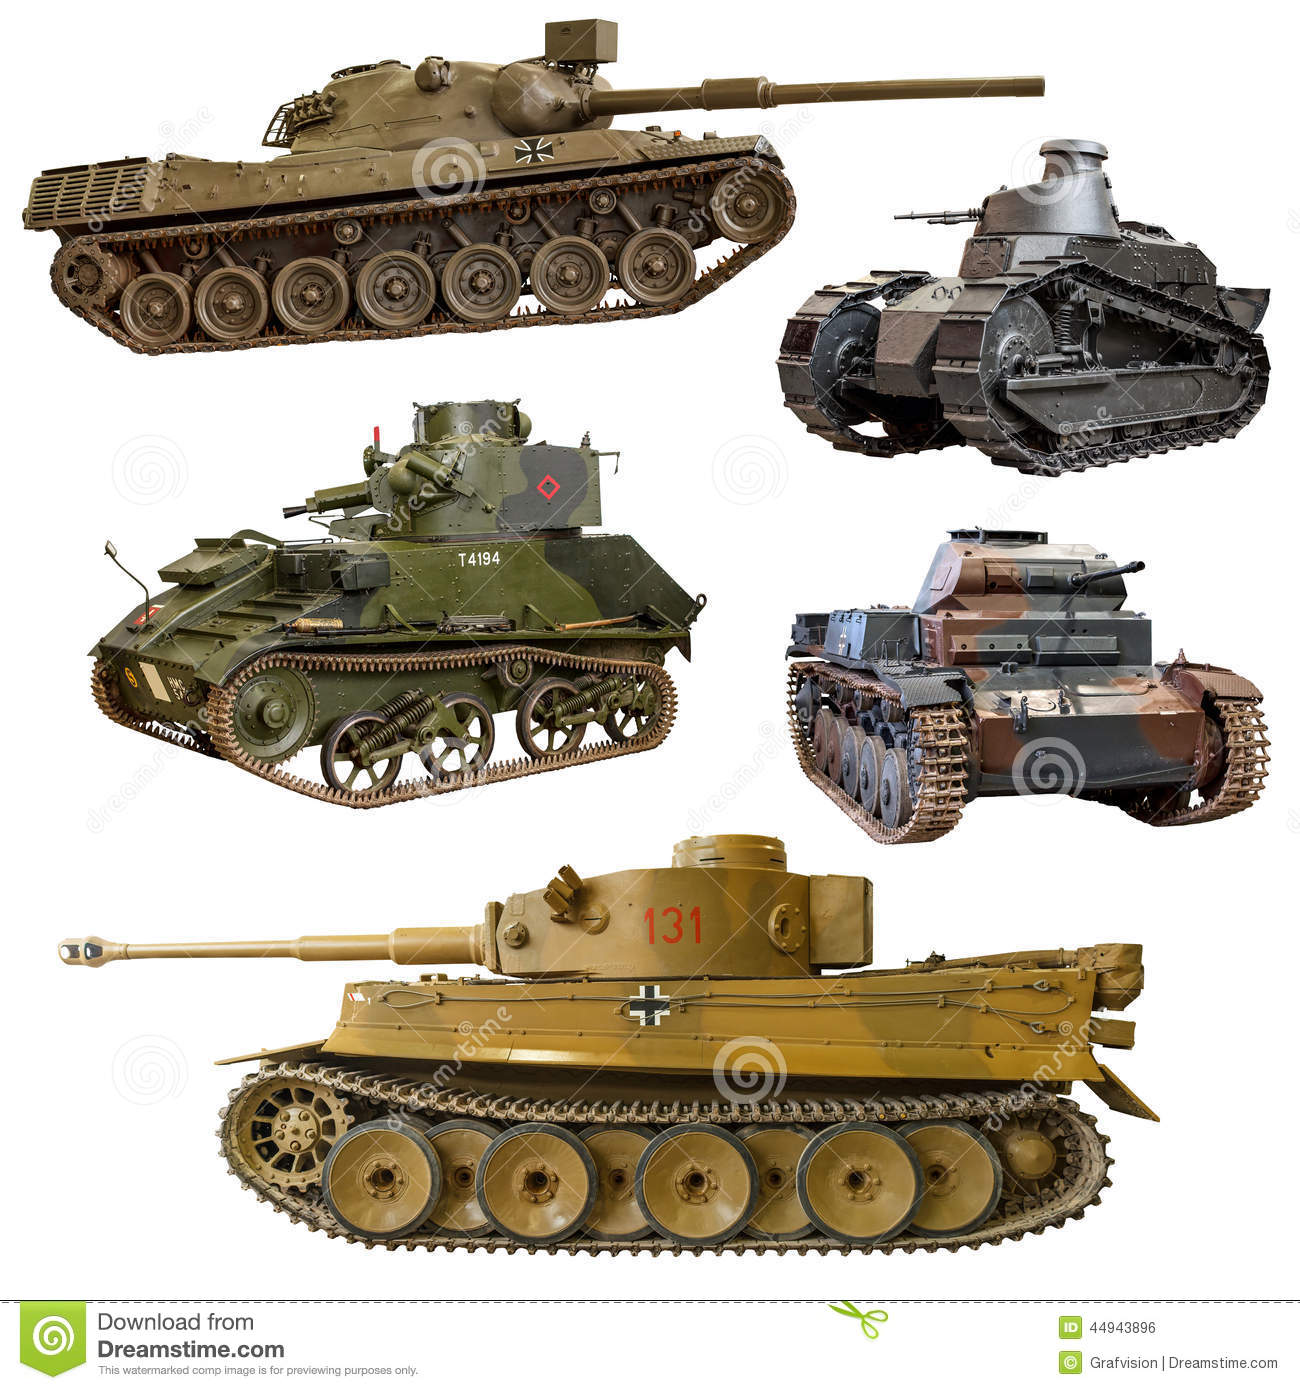 World War 2 tank stock photo  Image of isolated, military - 44943896